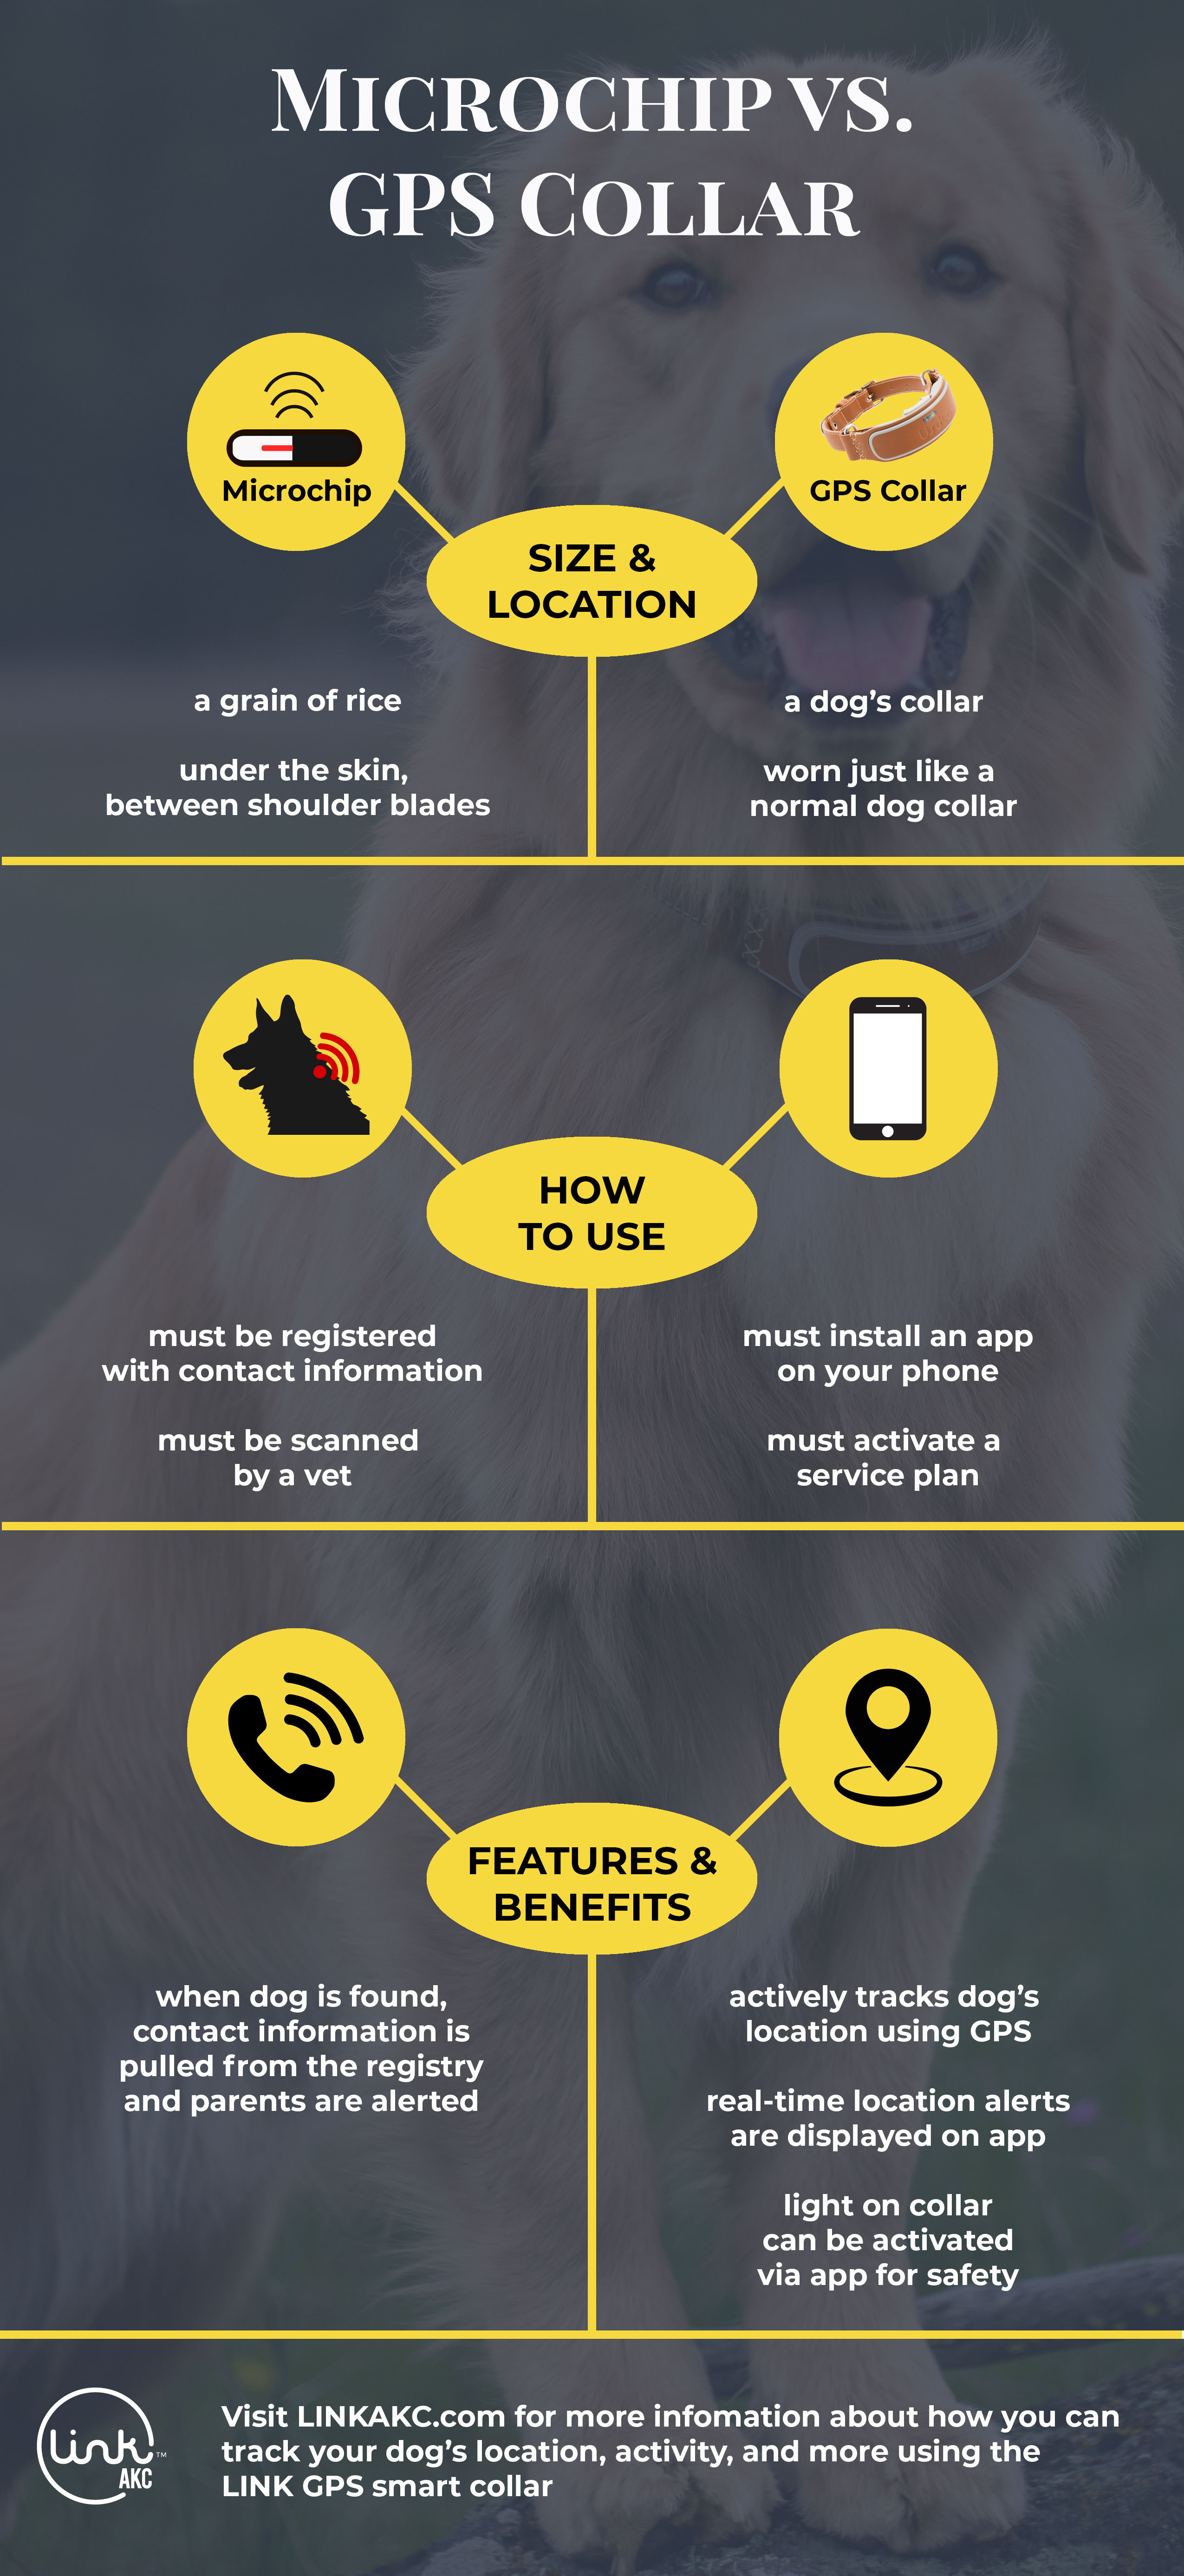 microchip-vs-gps-collar-infographic